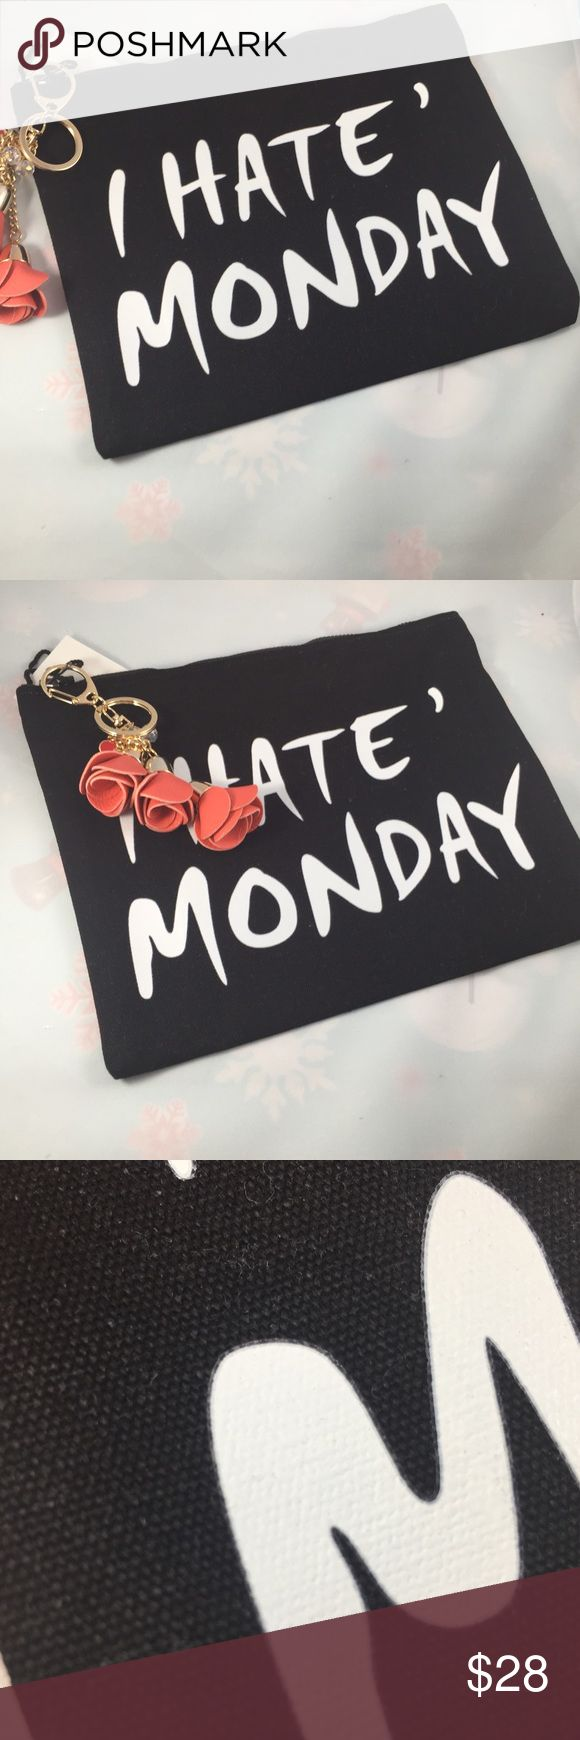 """""""I Hate Monday"""" Make up Bag. - Brand new. - Cotton. - Zip closure. - Lead and nickel compliant. - 10.5"""" L - 8"""" H - 0.75"""" W - 🚫trades. - Price Firm unless bundled. Bags Cosmetic Bags & Cases"""